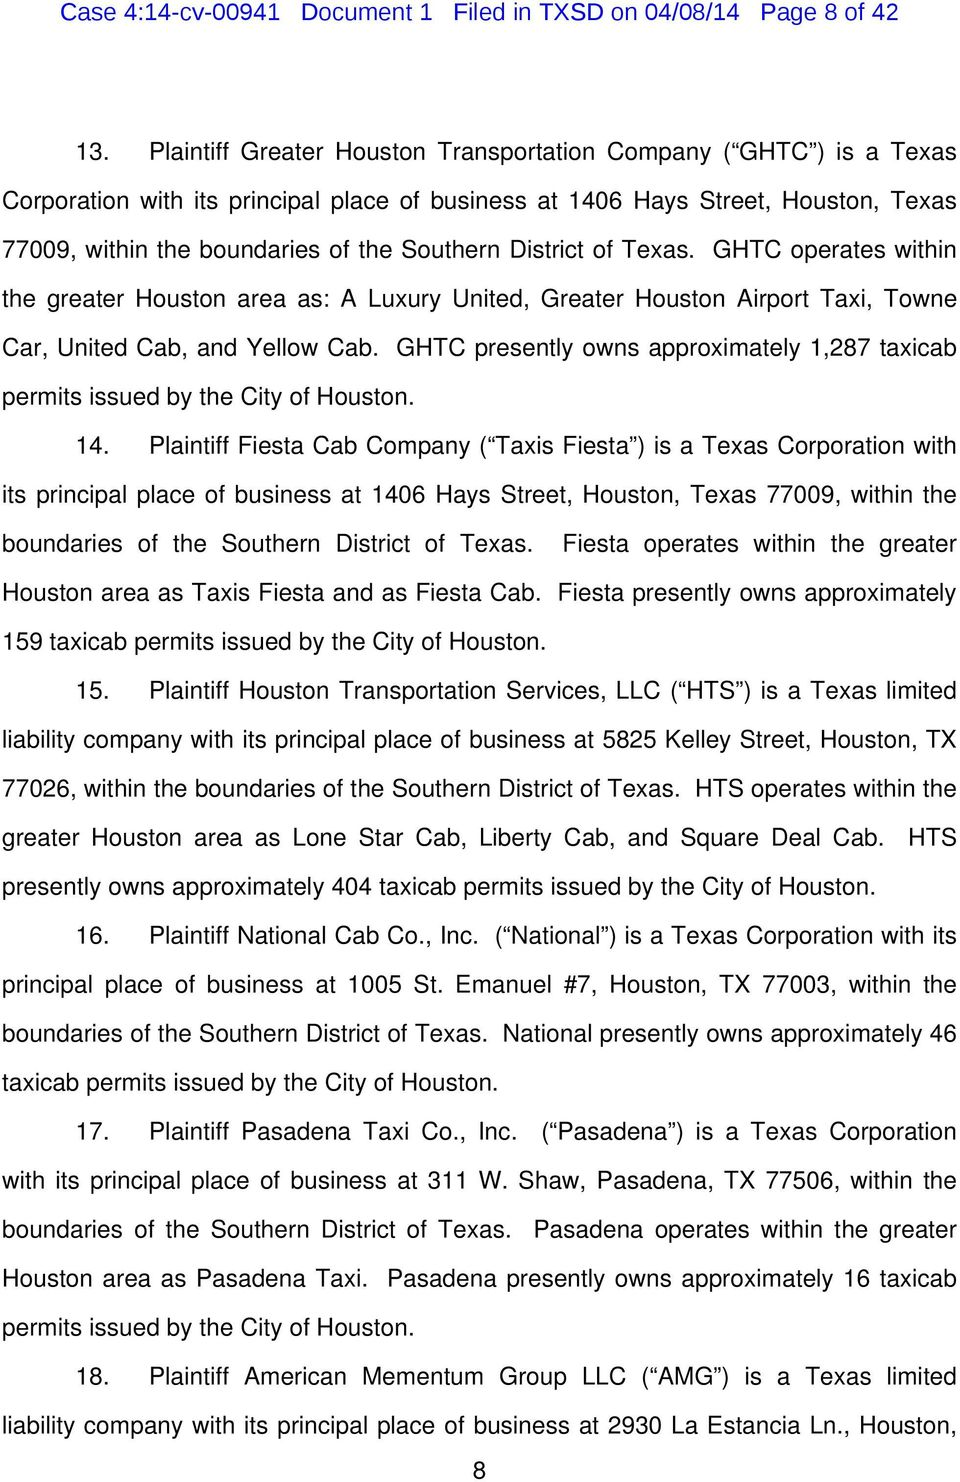 District of Texas. GHTC operates within the greater Houston area as: A Luxury United, Greater Houston Airport Taxi, Towne Car, United Cab, and Yellow Cab.